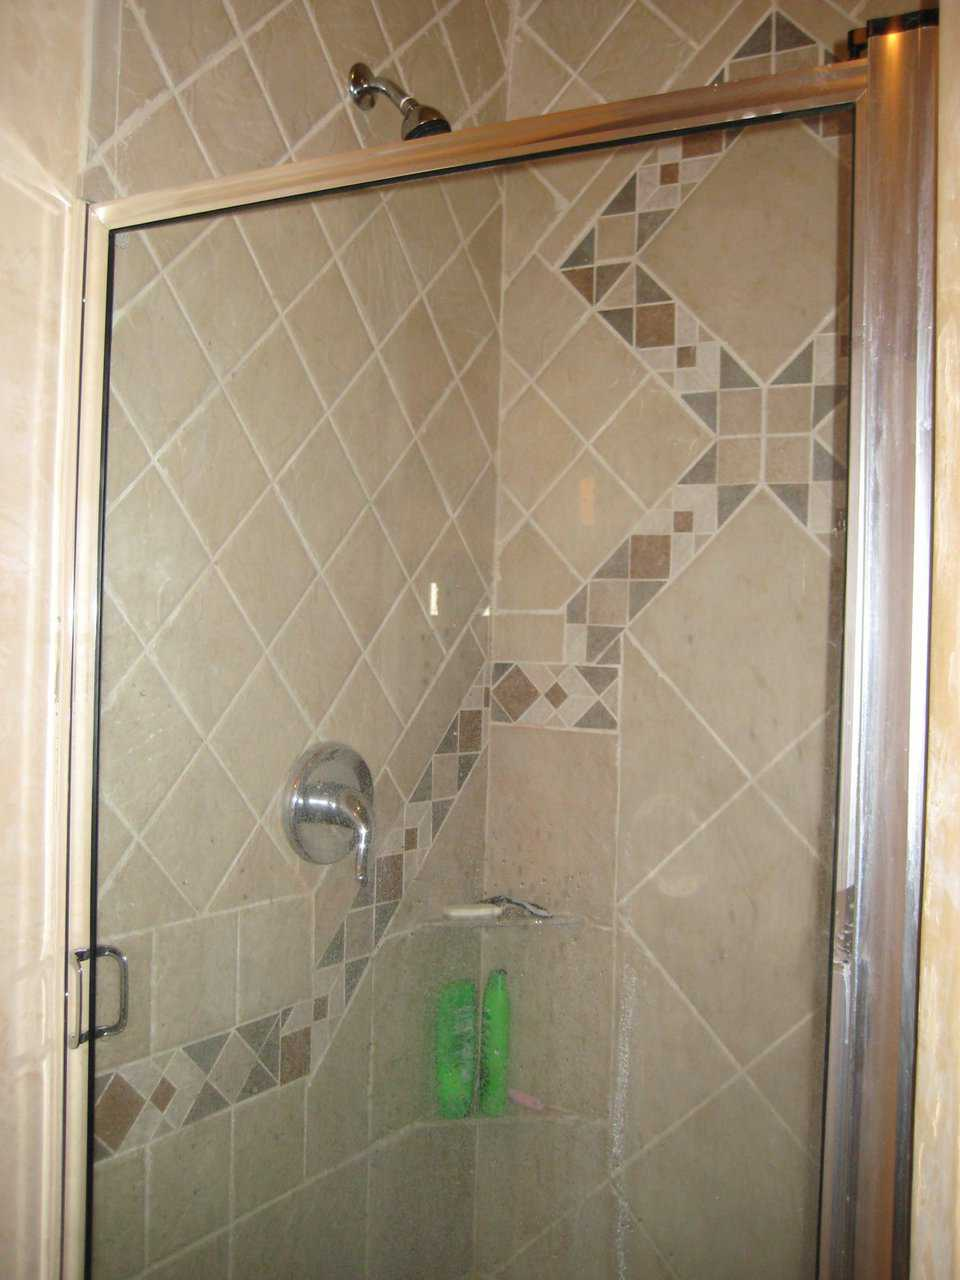 Intricate tile work — Walls with tiles of various colors and sizes form ornate patterns and enclose this shower.